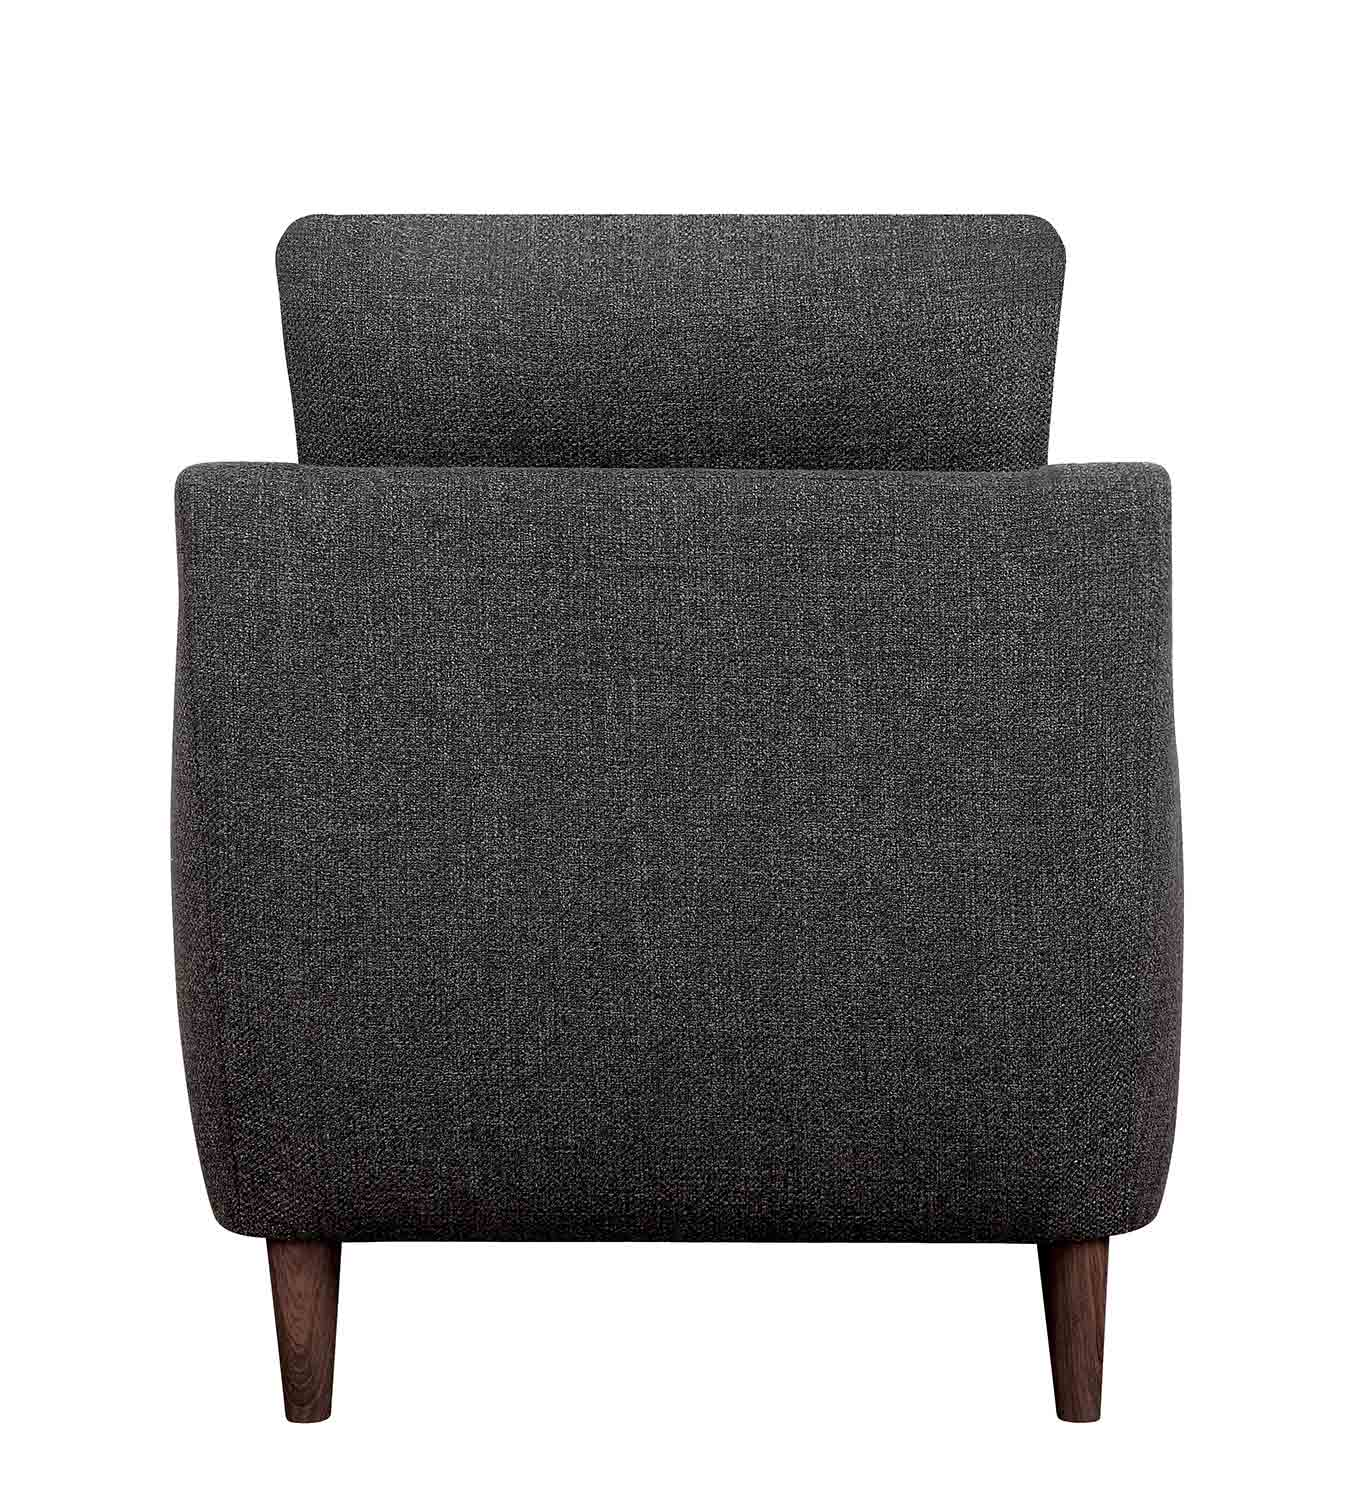 Homelegance Cagle Accent Chair - Chocolate